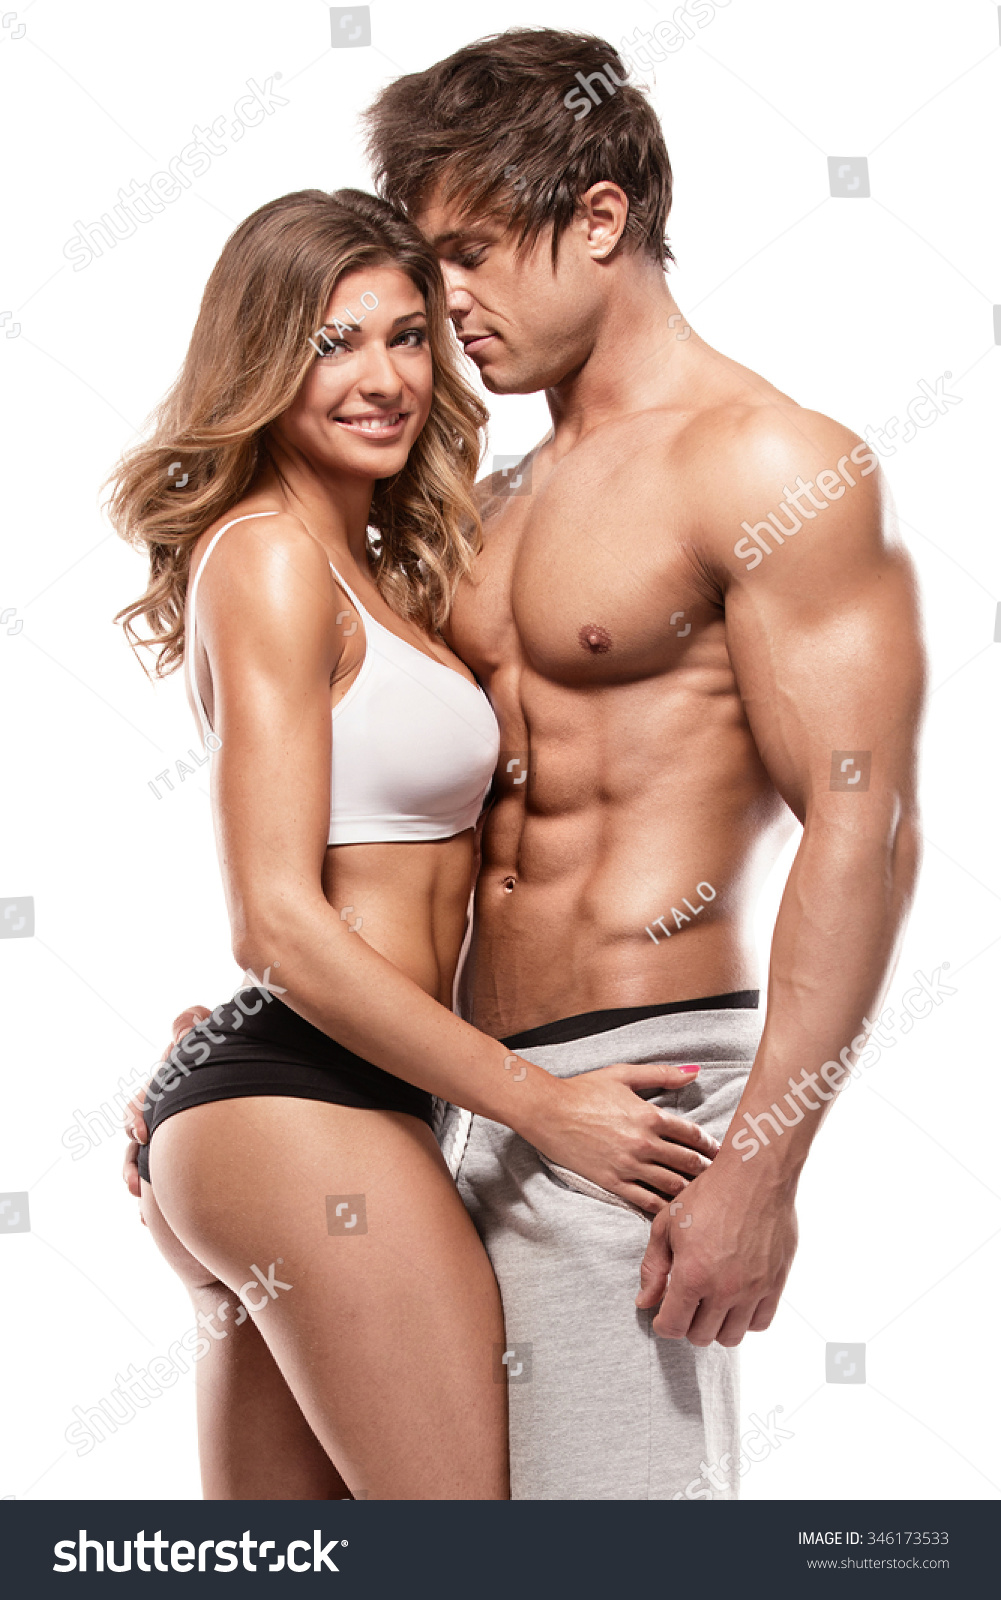 Muscl guy around sexy girls holding them Sexy Couple Muscular Man Holding Beautiful Stock Photo Edit Now 346173533